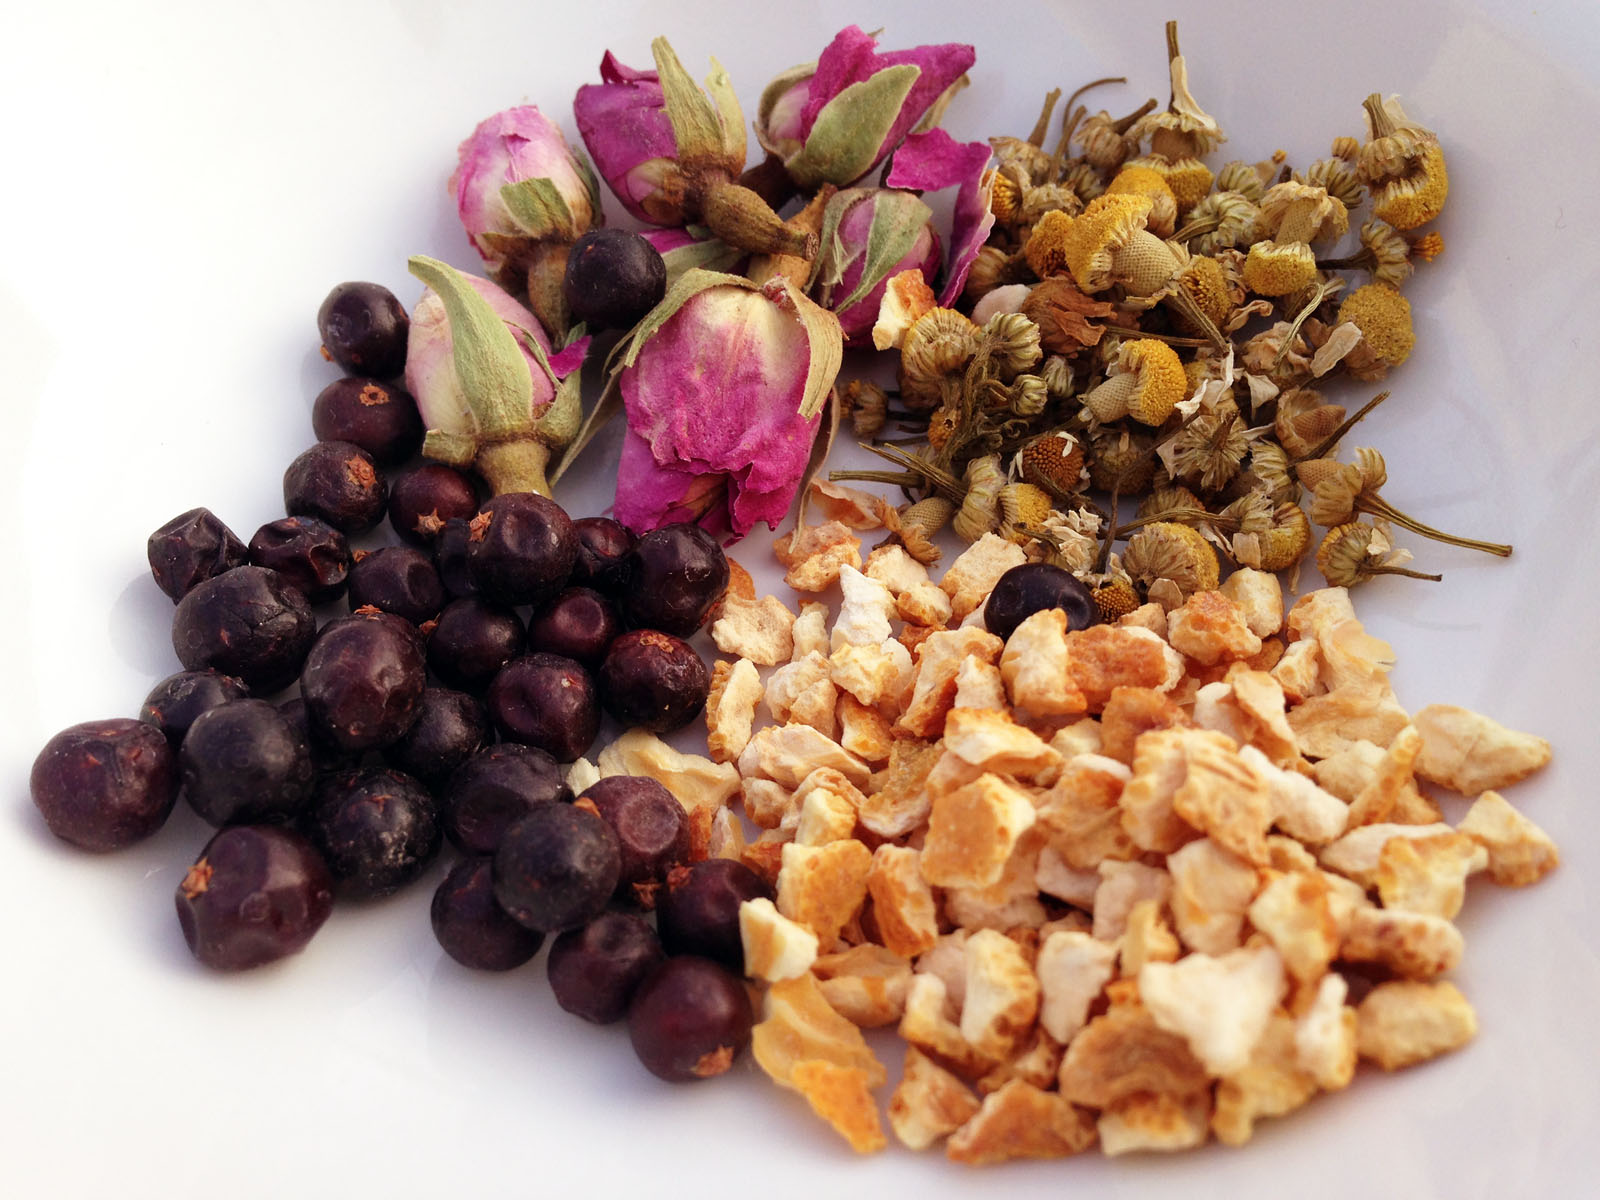 Some of the floral and herbal aromatics in Giniper White.